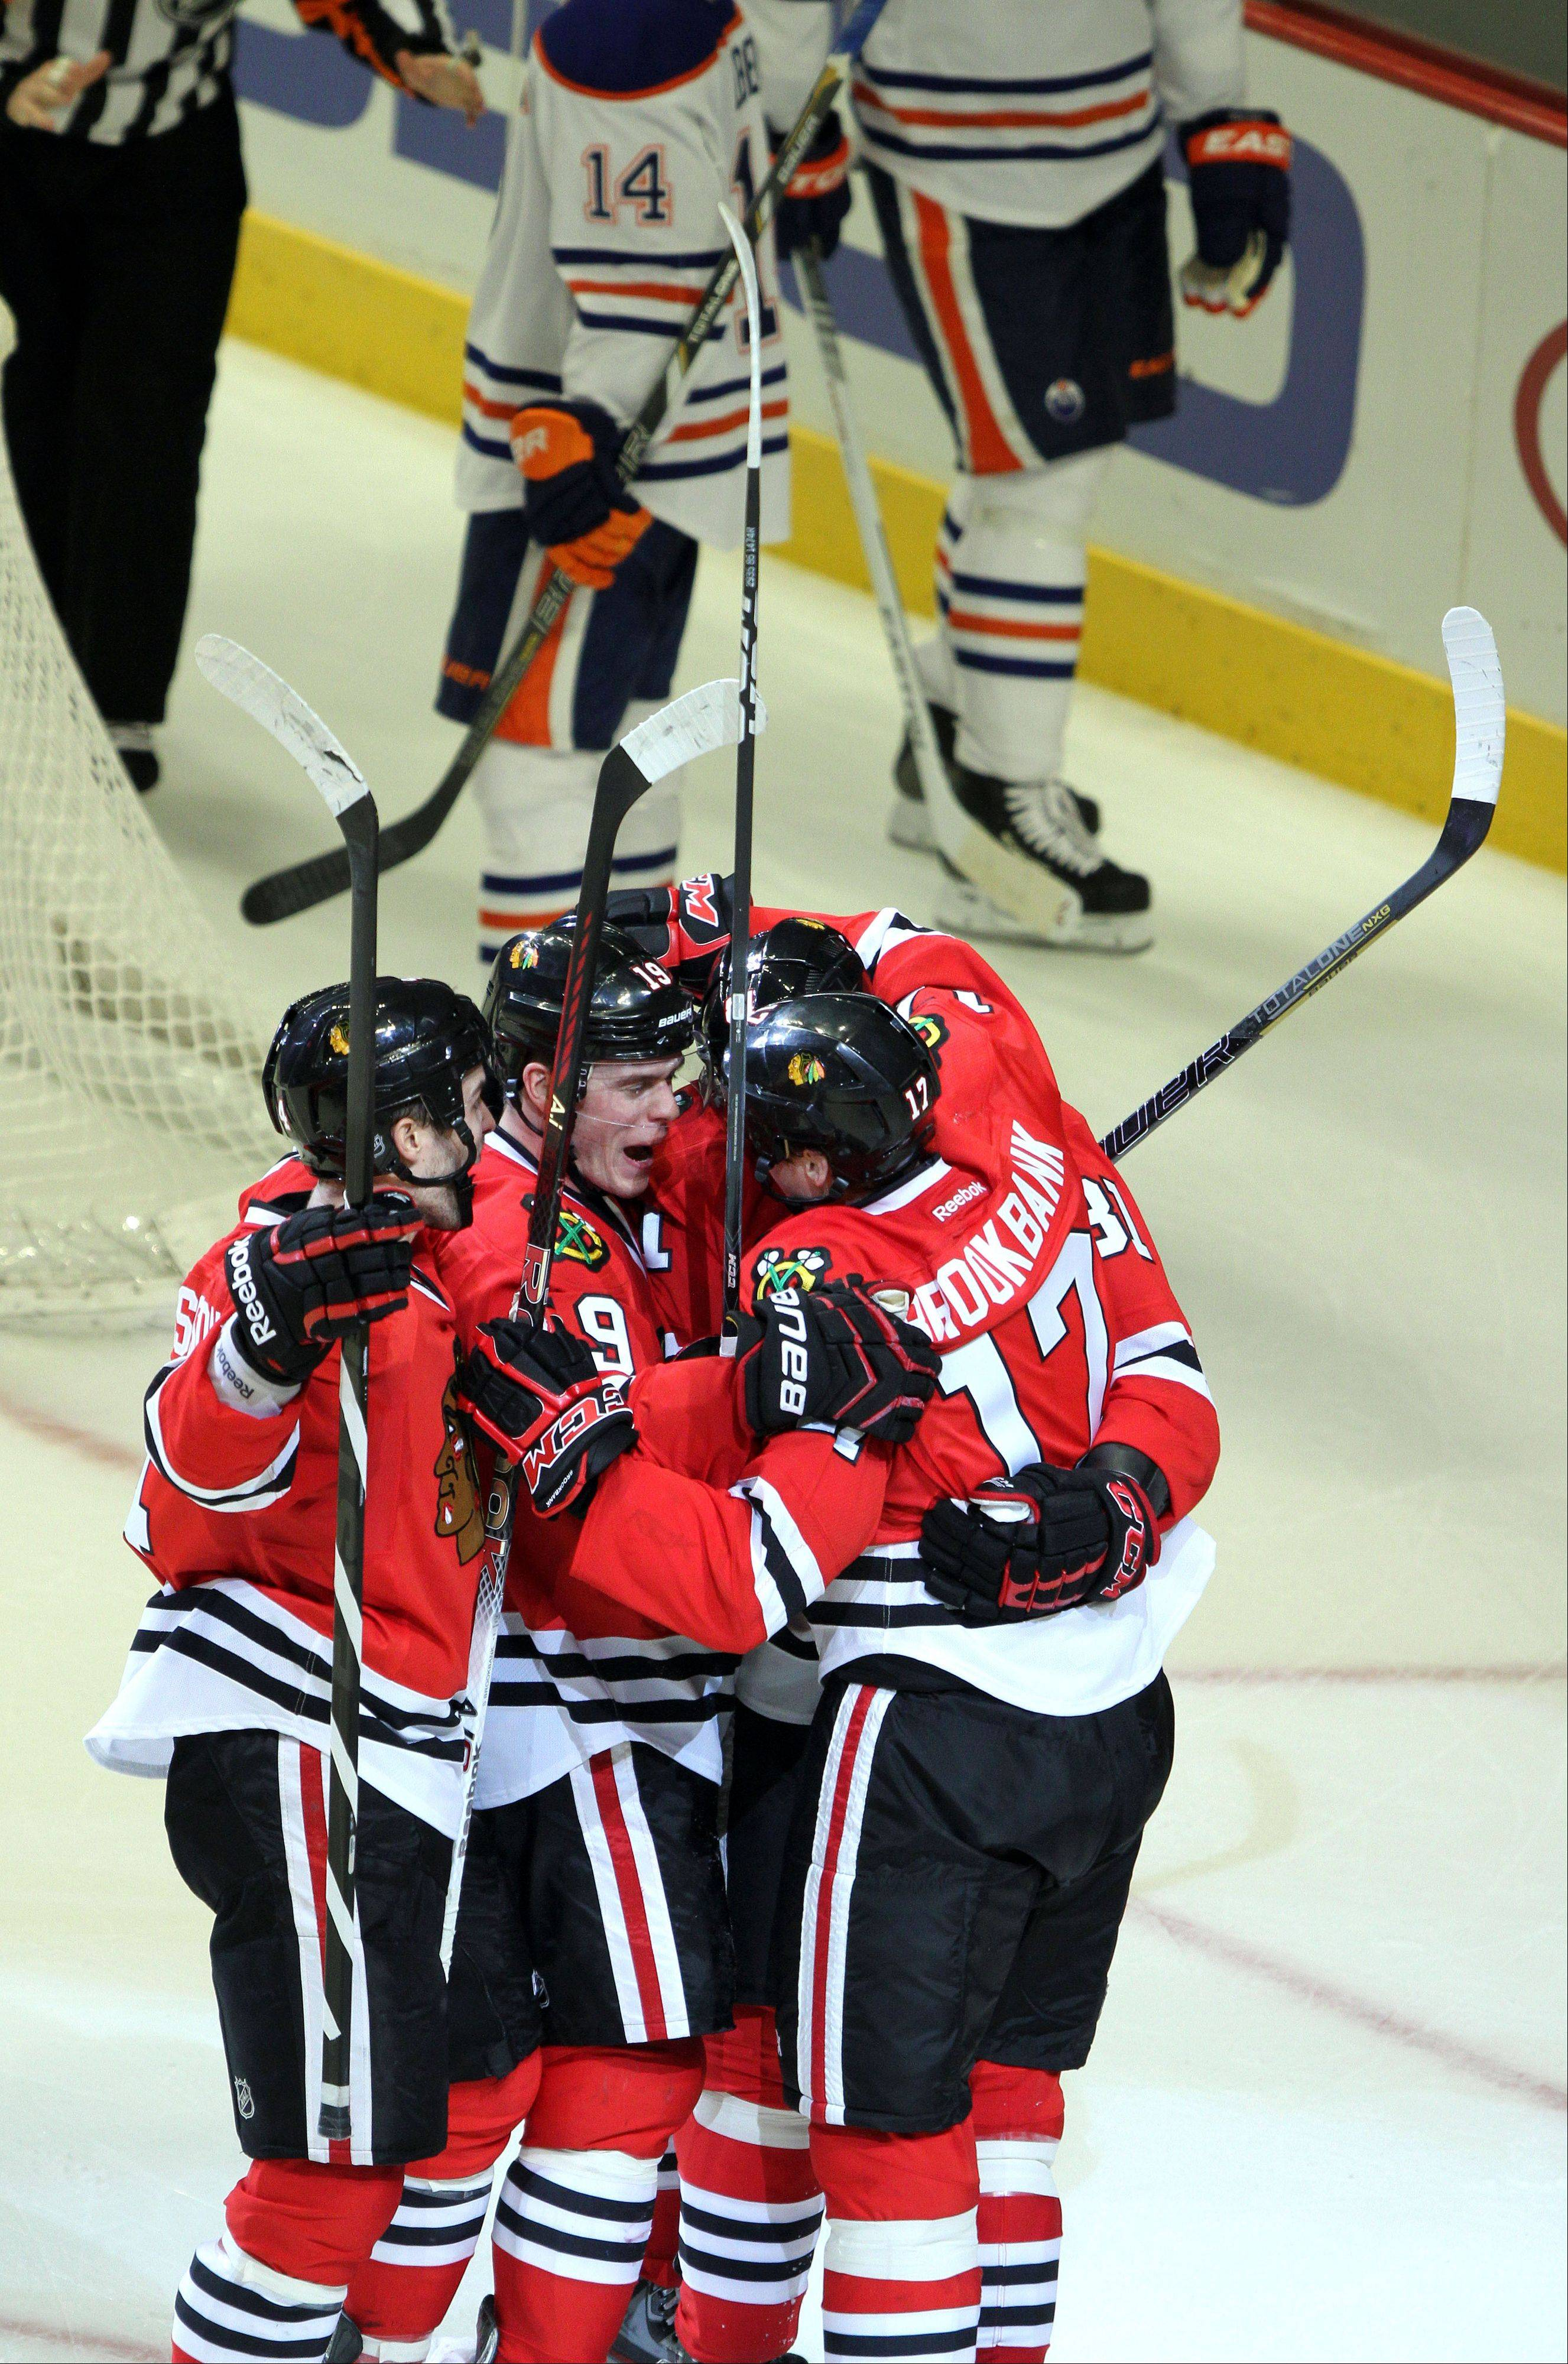 Blackhawks players celebrate with Chicago Blackhawks defenseman Sheldon Brookbank after his second period goal during their game Sunday night at the United Center in Chicago.